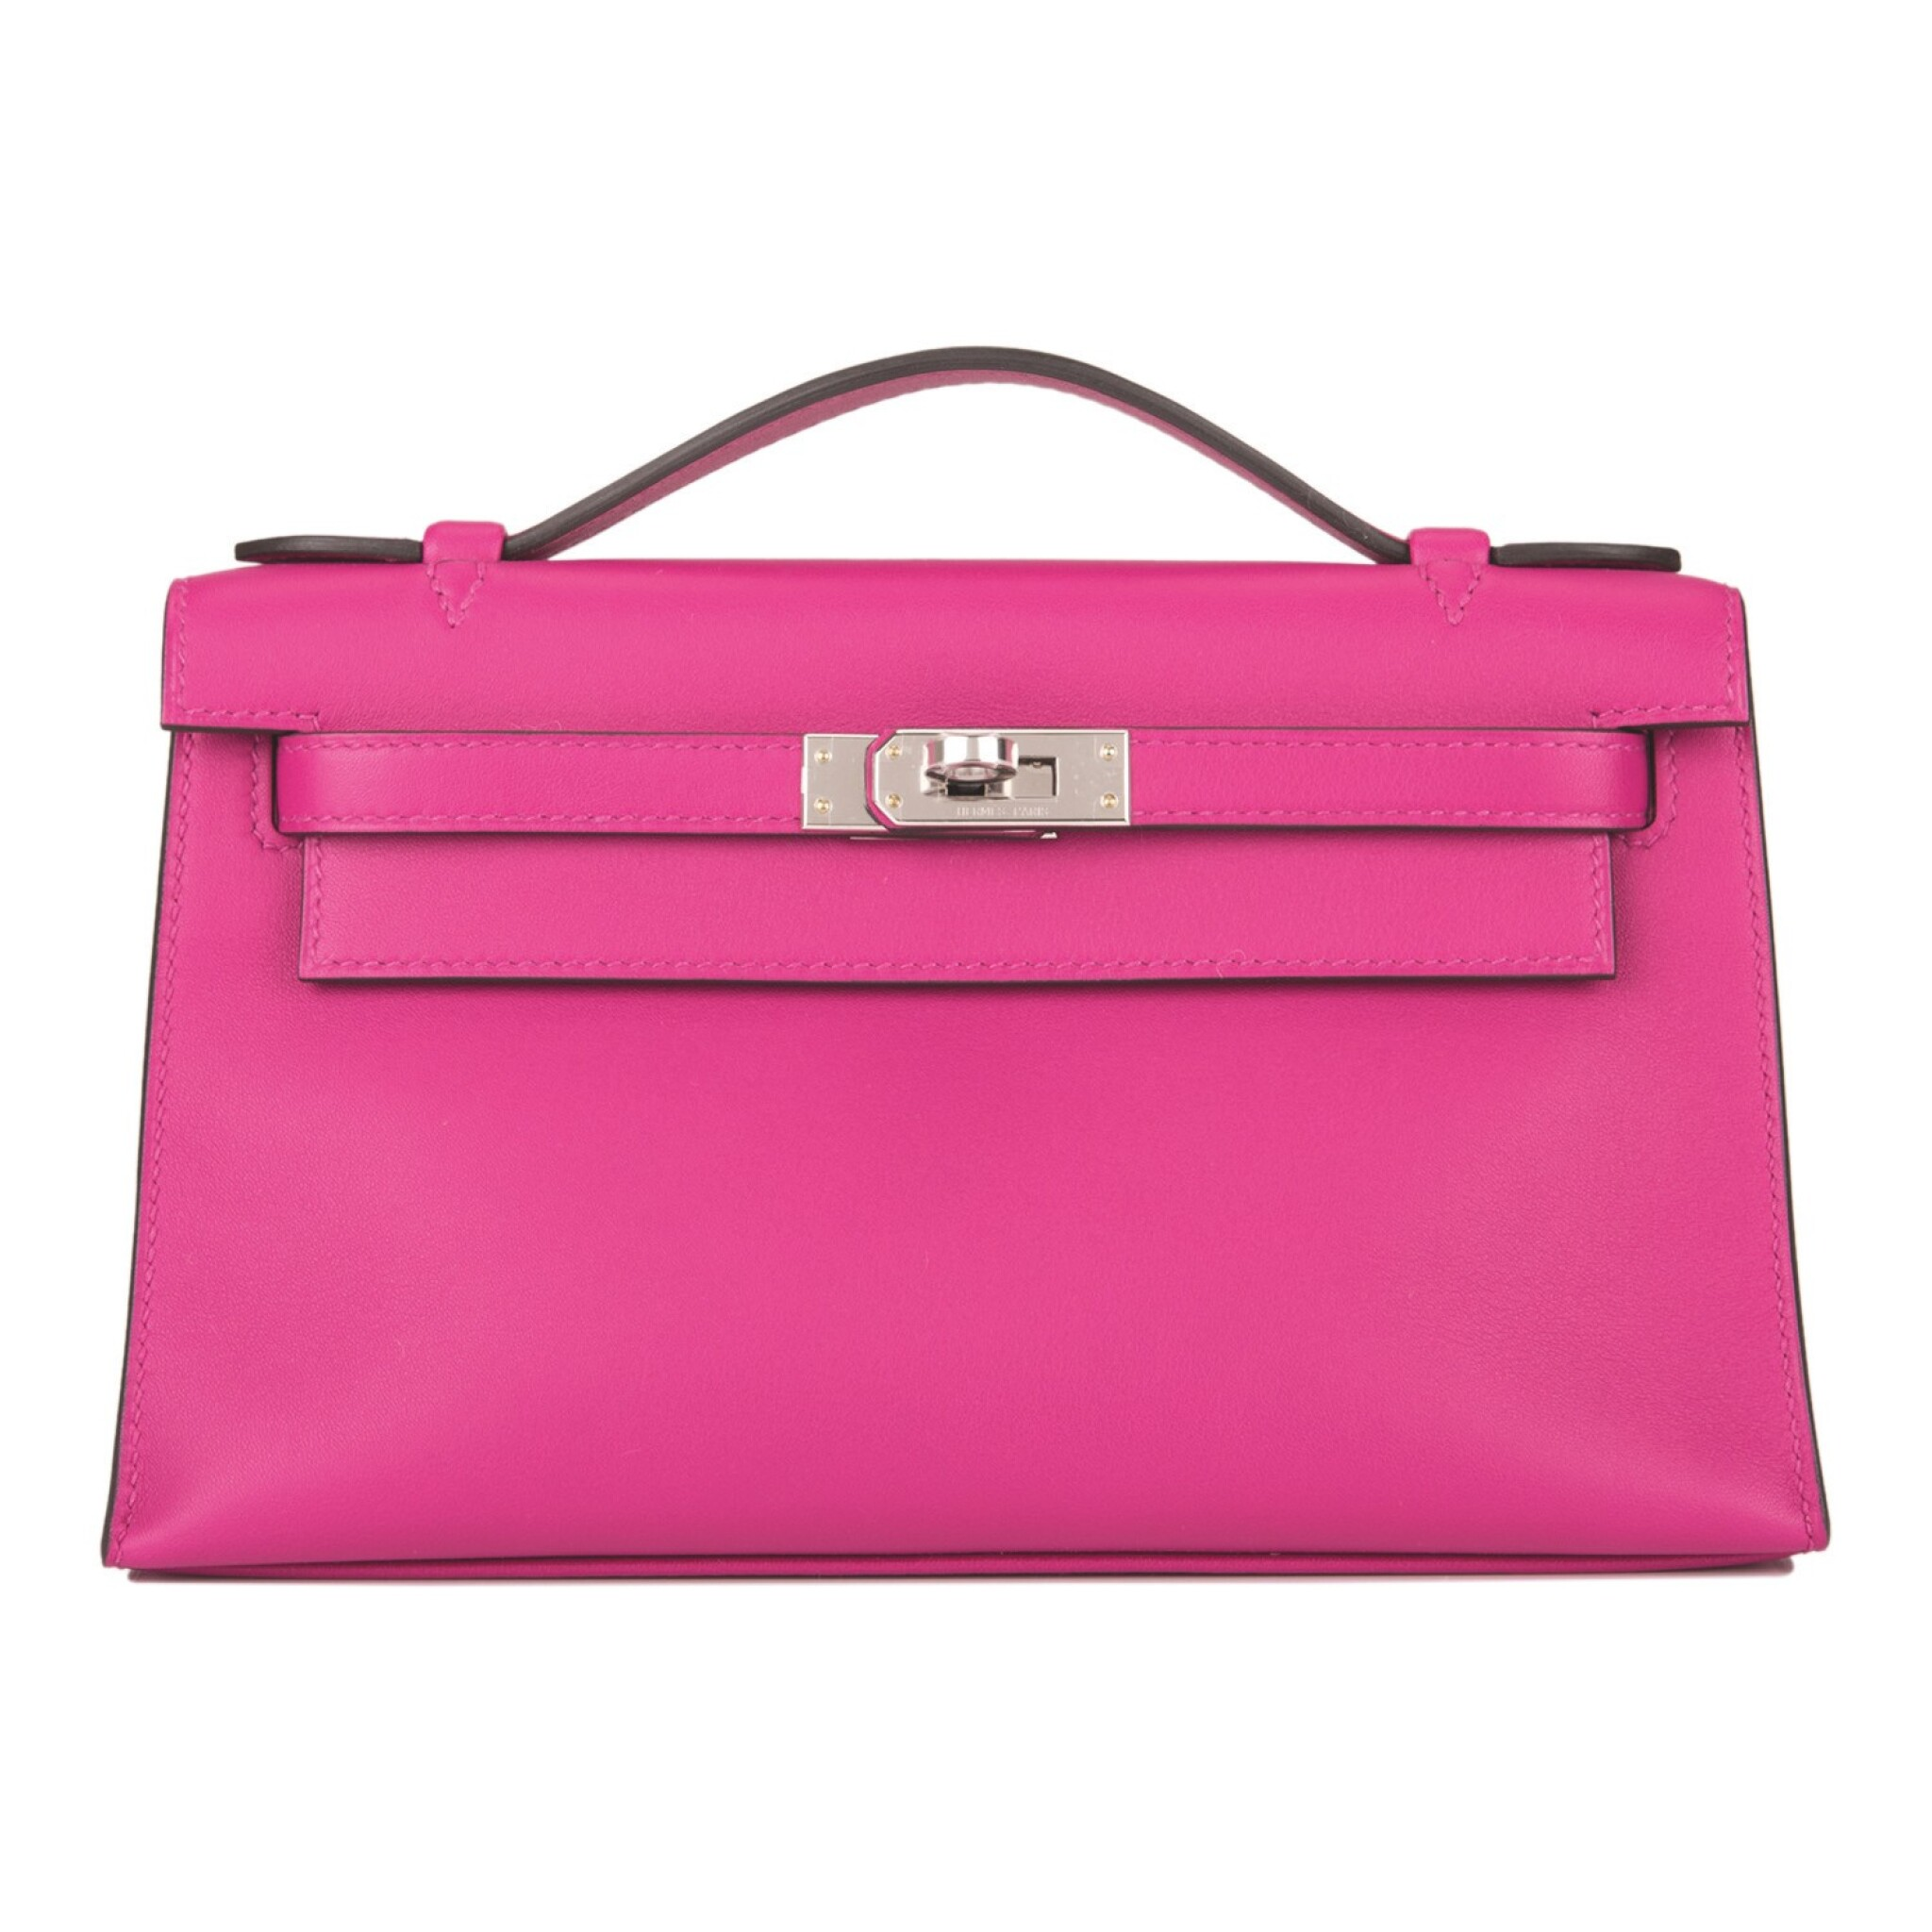 View full screen - View 1 of Lot 16. Hermès Rose Pourpre Mini Kelly Pochette of Swift Leather with Palladium Hardware.